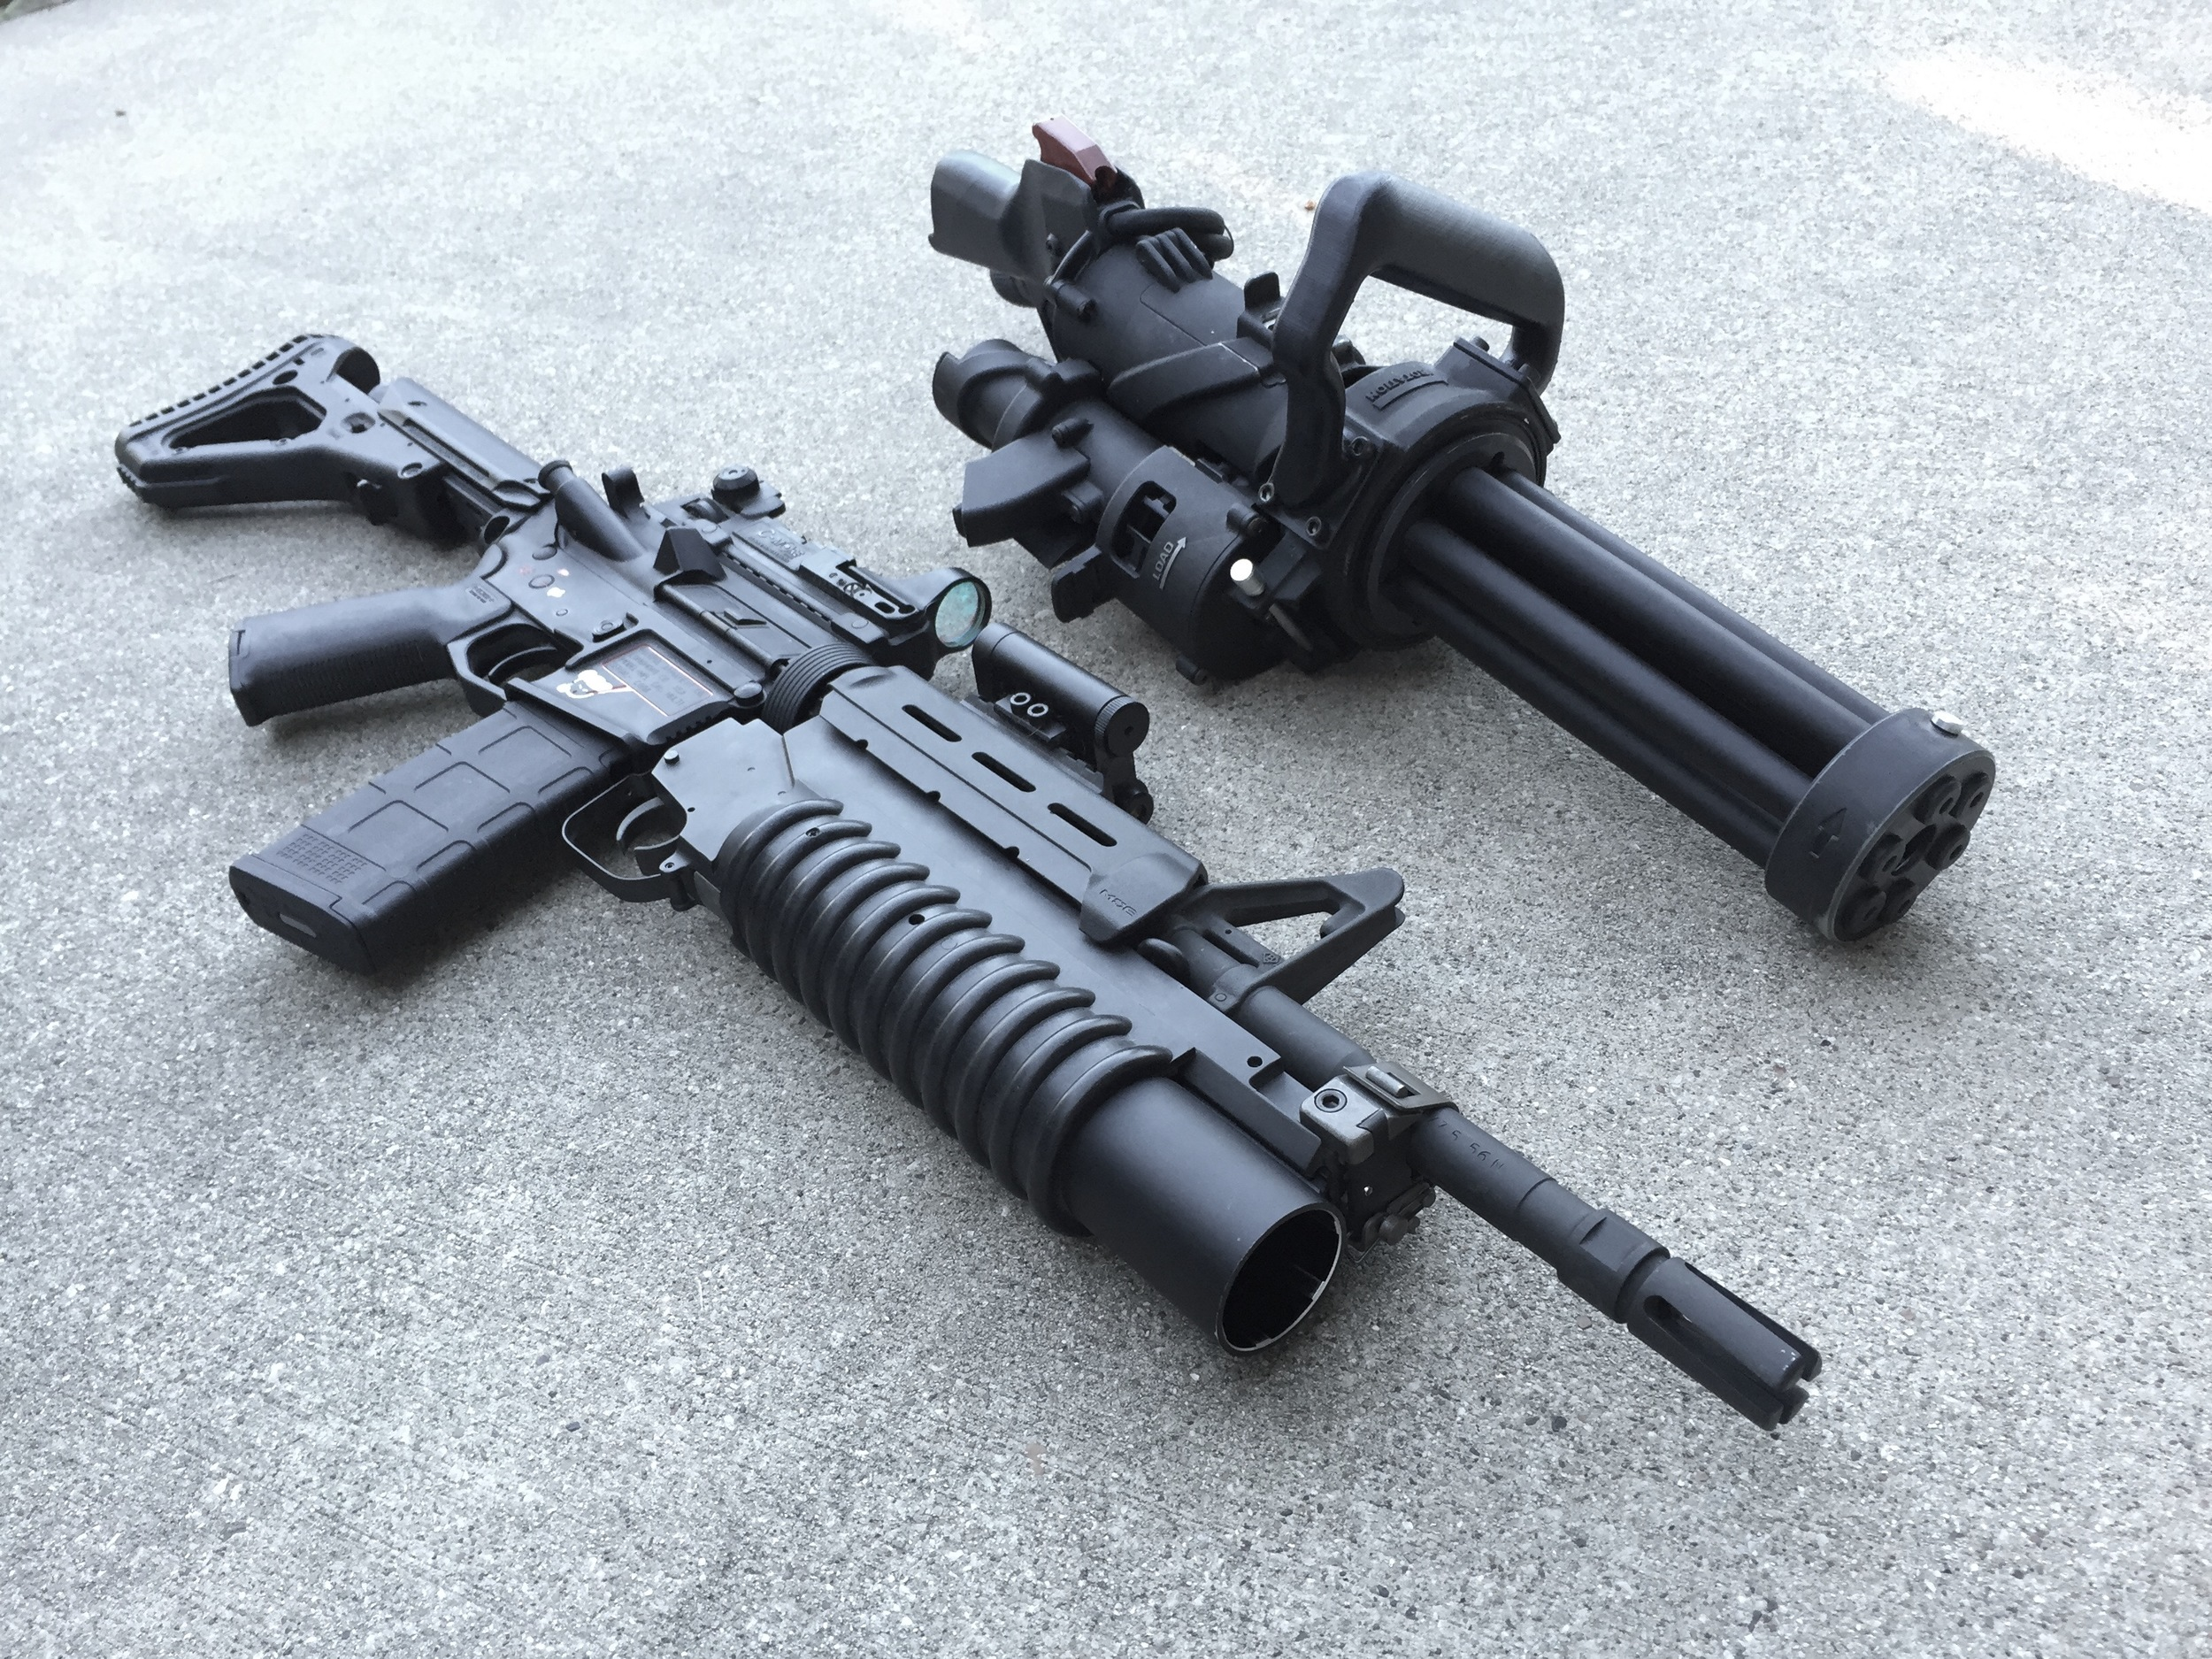 XM556 Microgun next to a Standard M4 with M203.